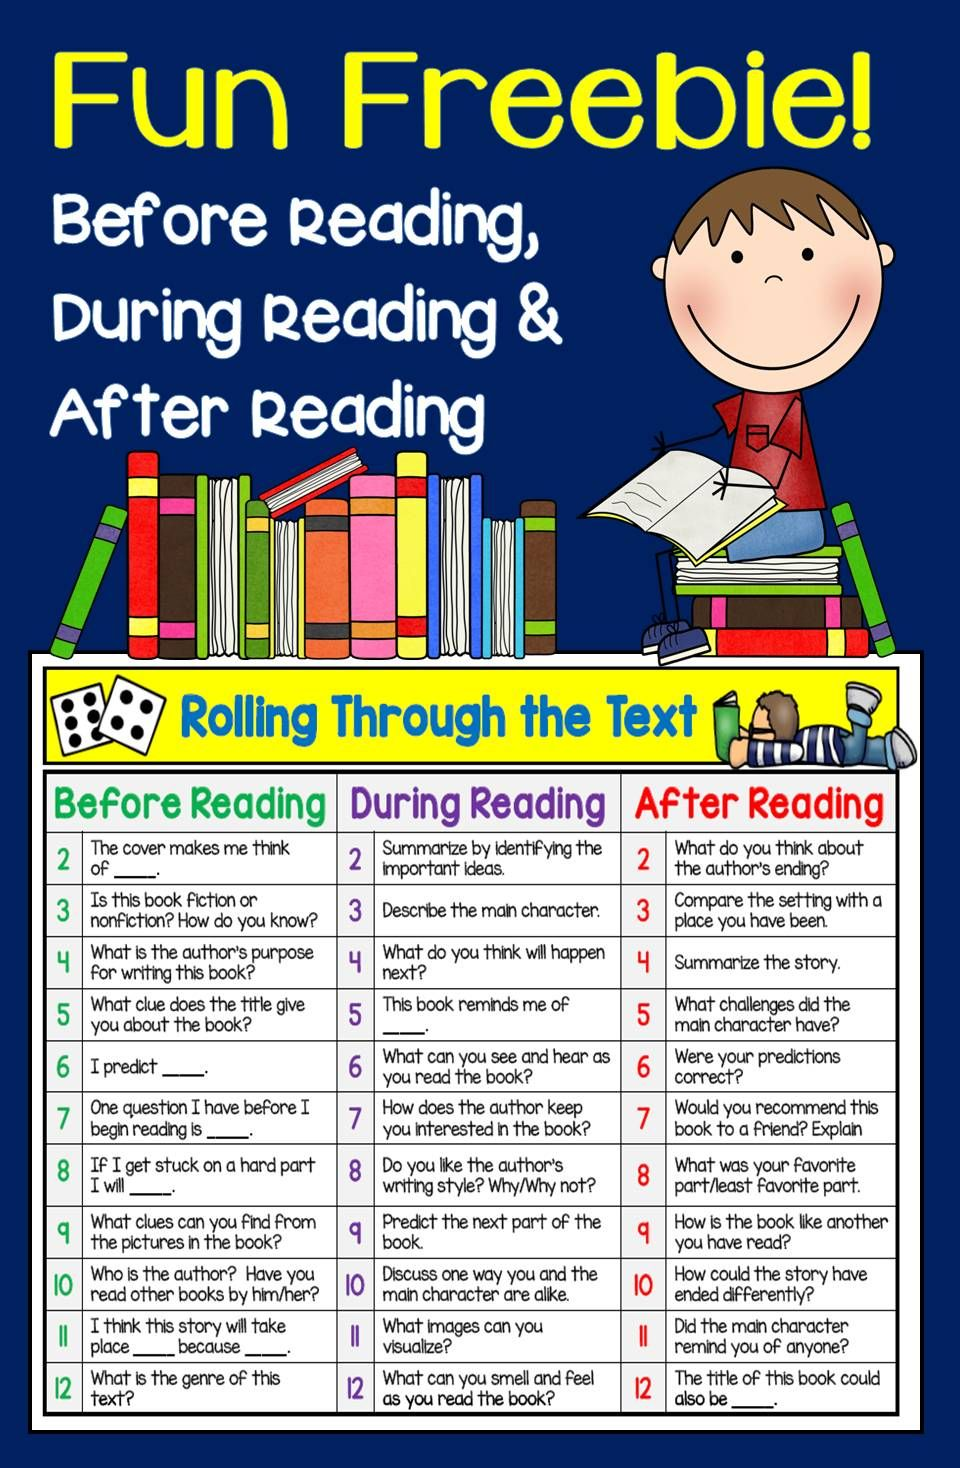 Fun Freebie for Reading Instruction! | TpT FREE LESSONS | Pinterest ...